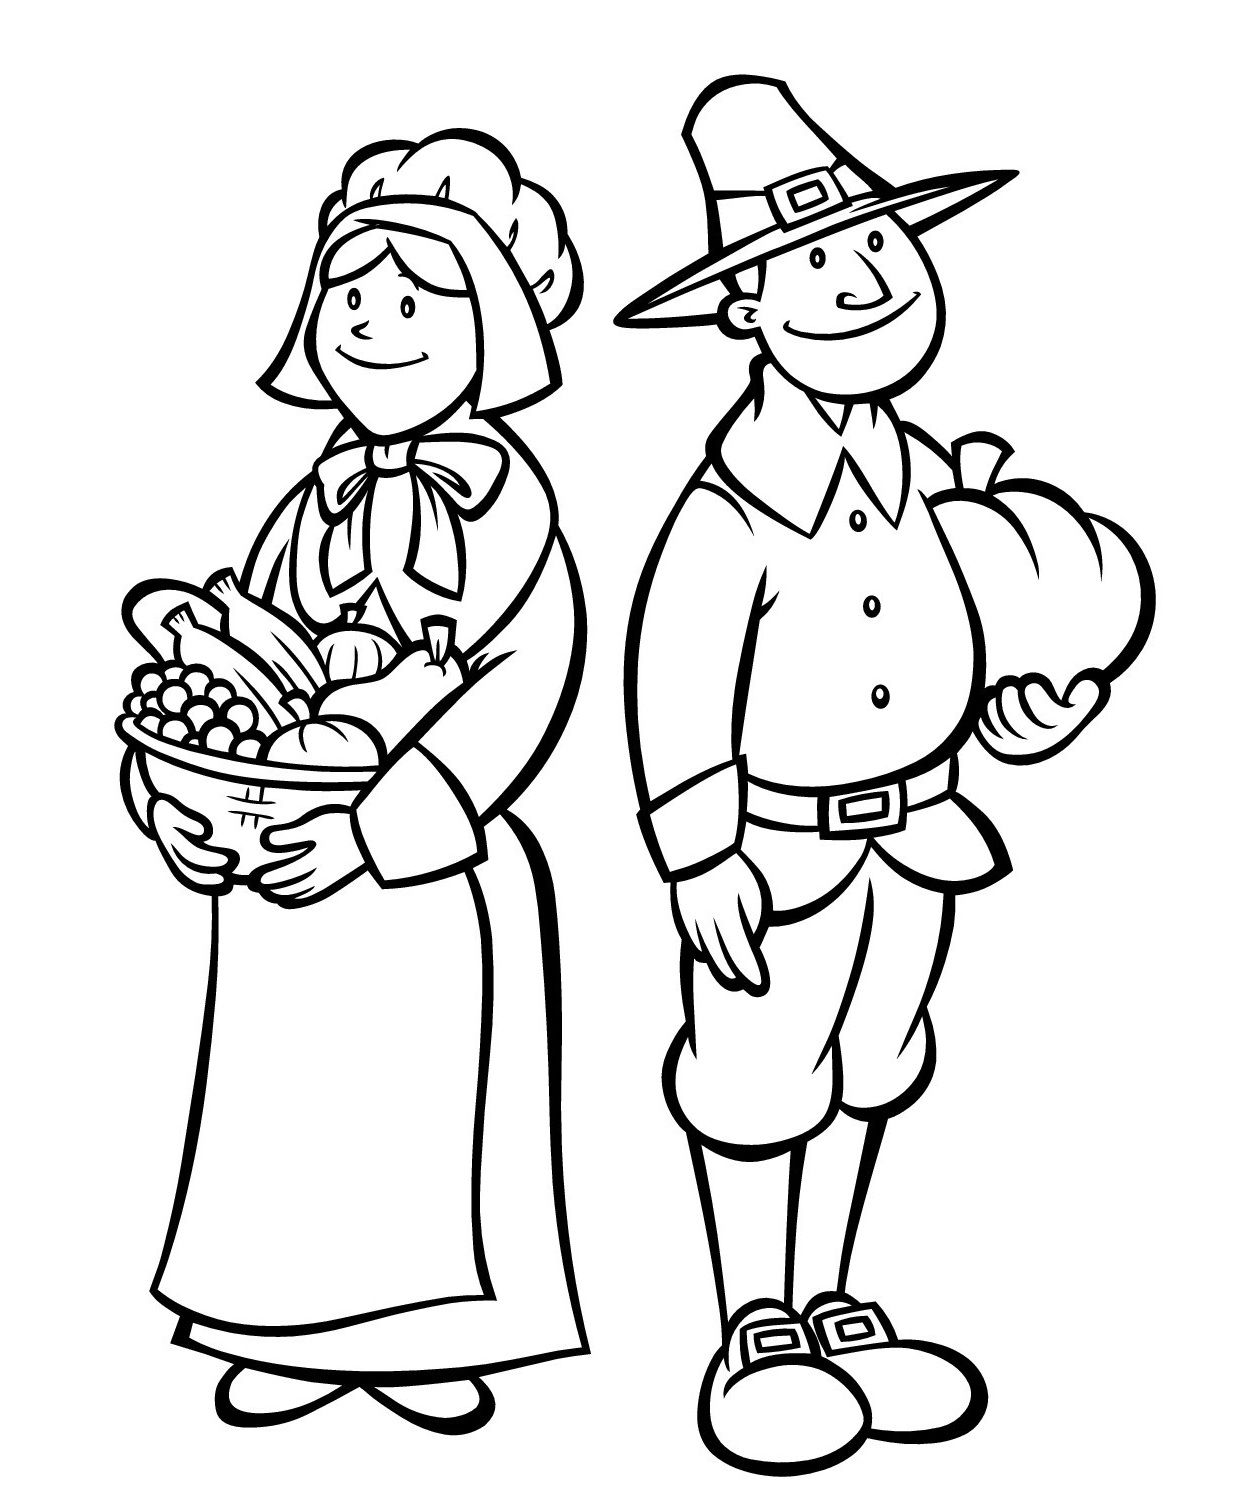 Printable Thanksgiving Pilgrims Coloring Pages For Kids Qk Printable Thanksgiving Coloring Pages For Kids